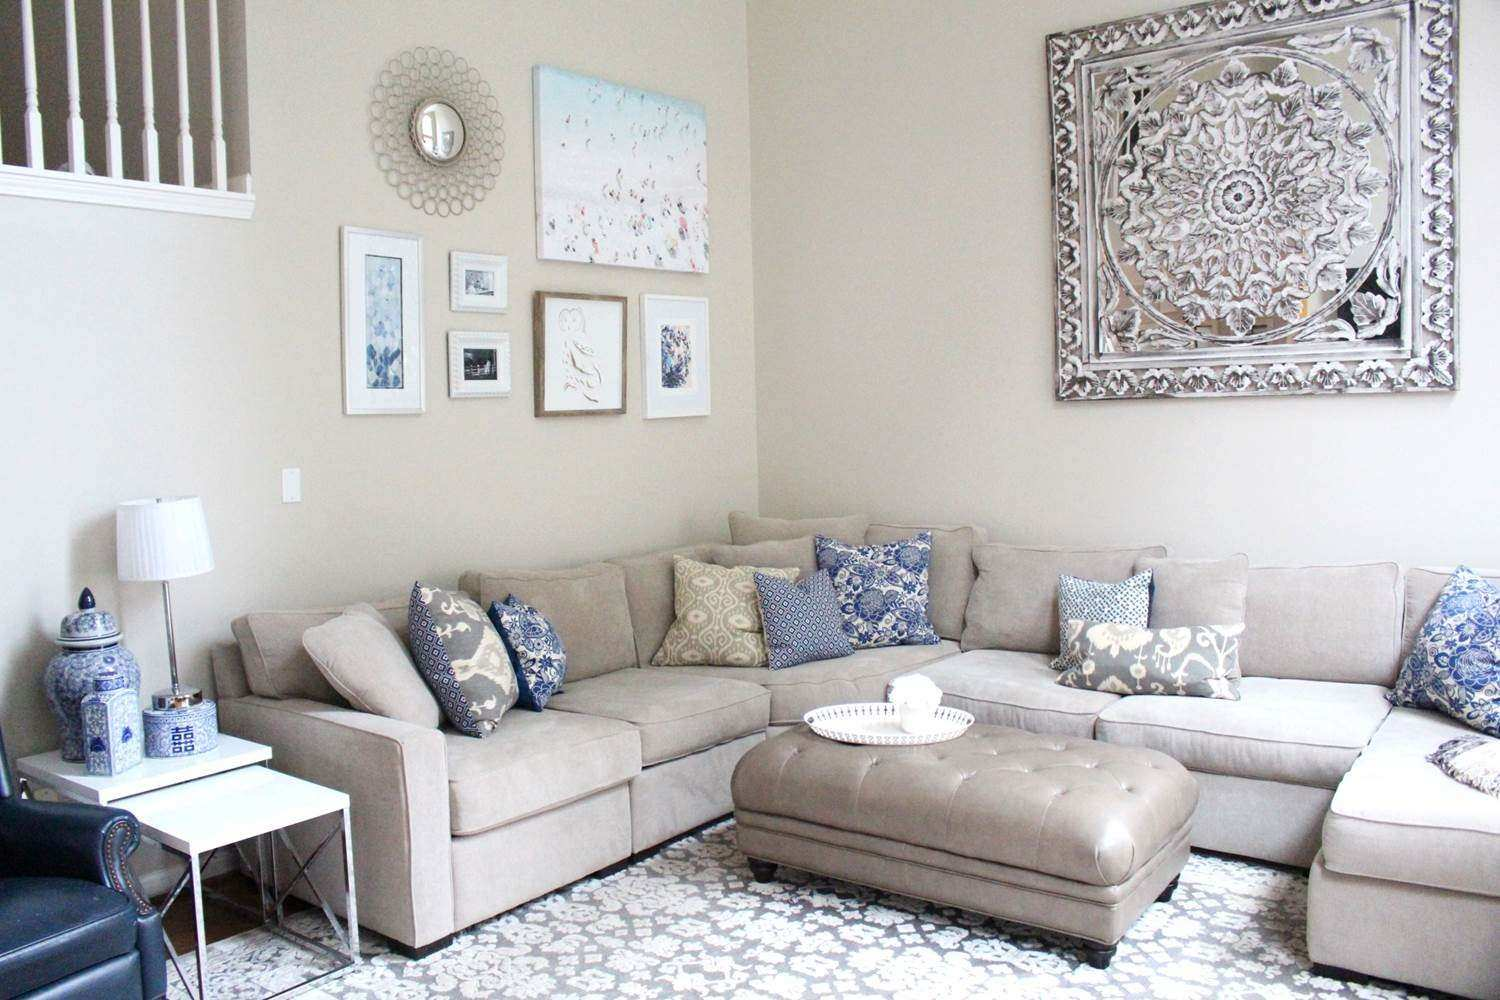 Luxury How to Decorate White Walls In Living Room | Wall Art Ideas